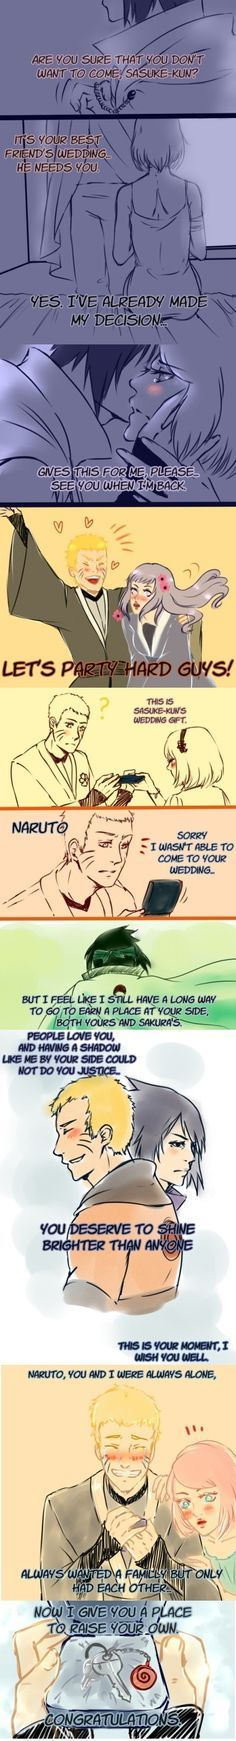 Why Sasuke was not at Naruto's wedding… The real reason is because Studio Pierrot hates Sasuke's guts…. I like to think this is what really happened.